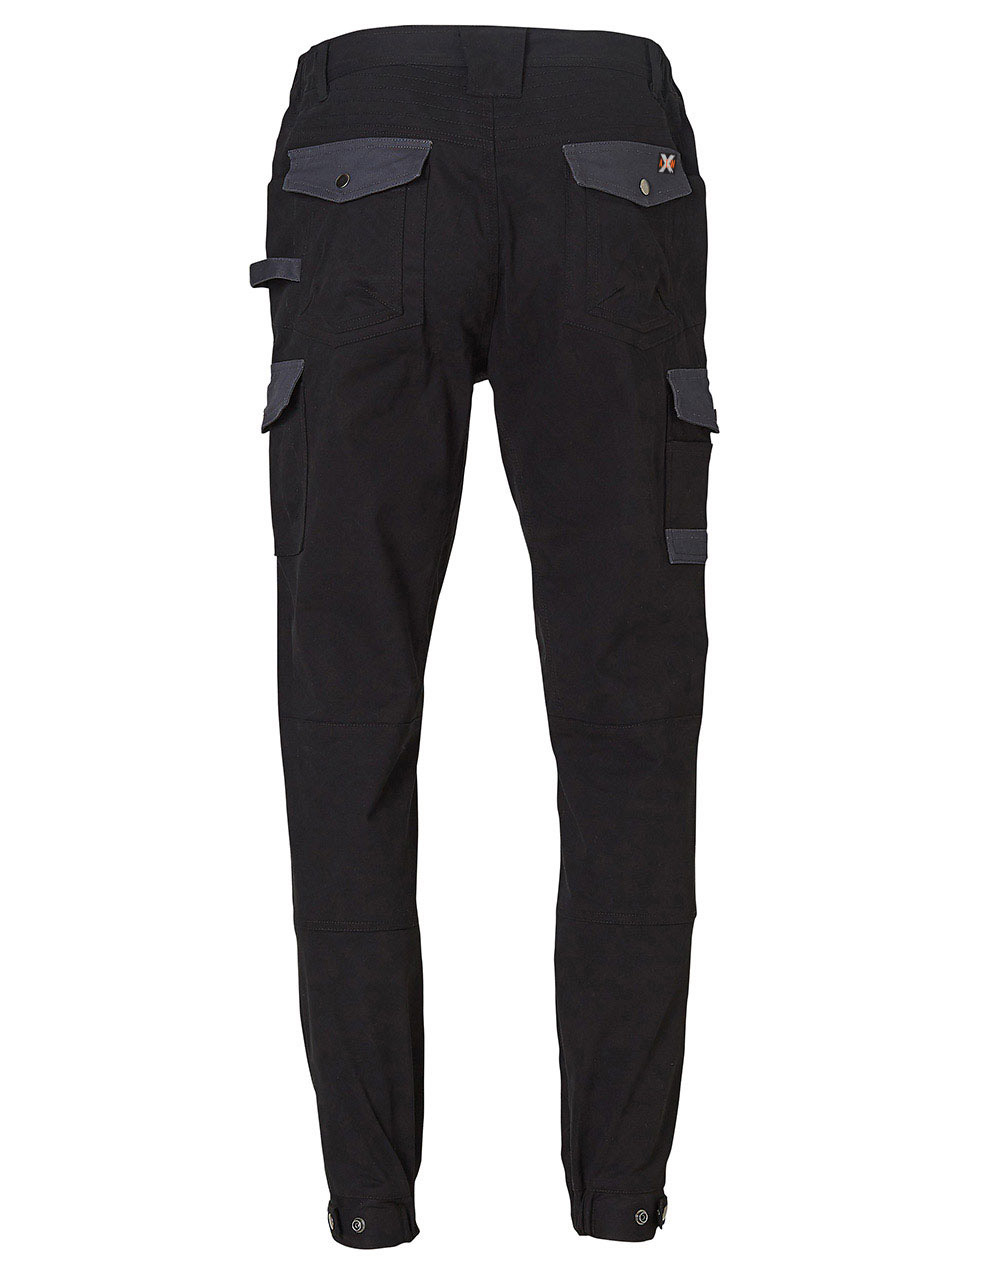 https://s3-ap-southeast-1.amazonaws.com/ws-imgs/WORKWEAR/WP22_Black_Back.jpg